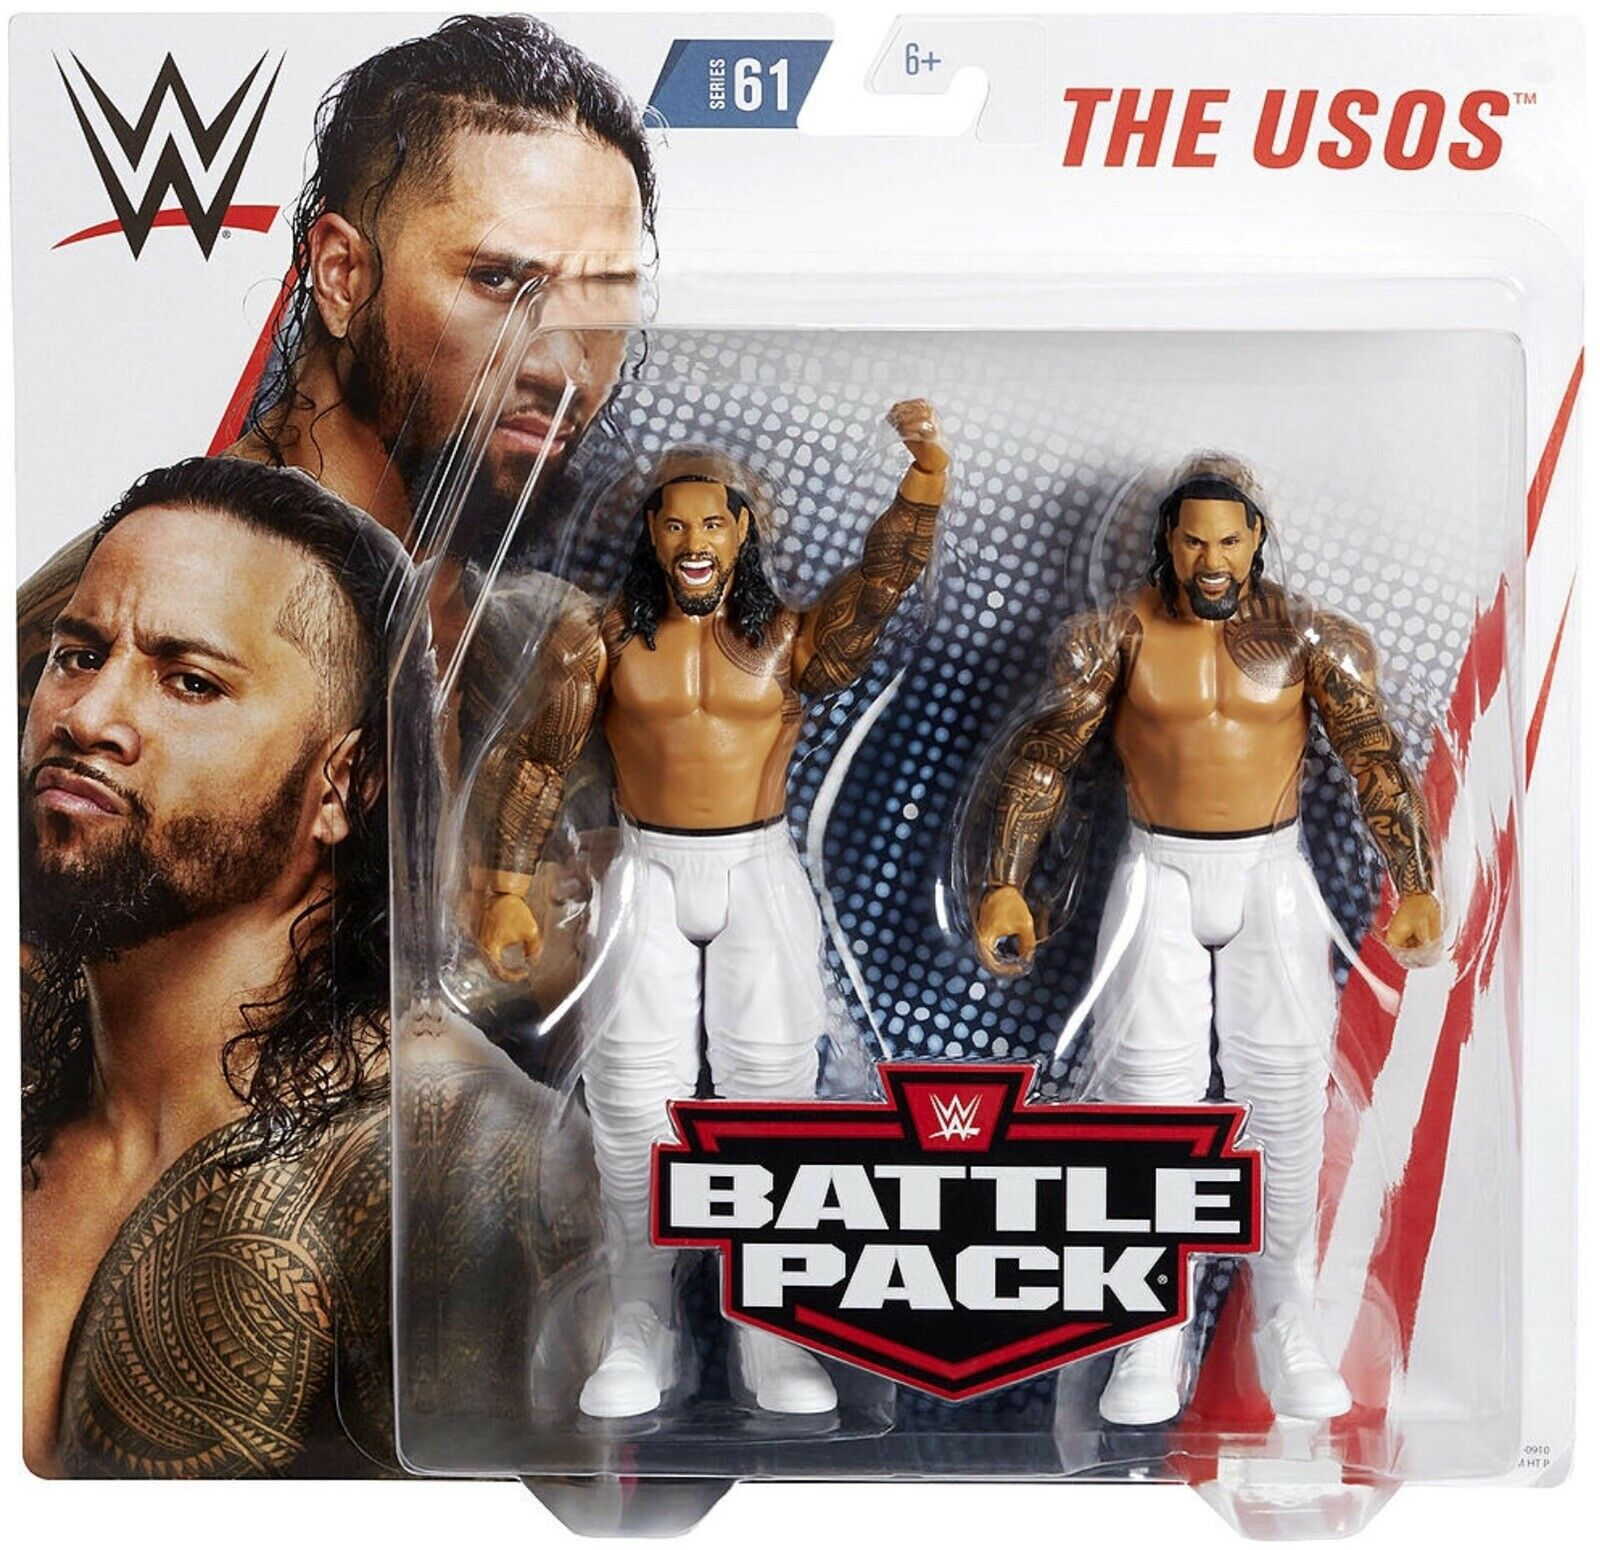 Wwe The Usos Jimmy & Jay Uso Jey battaglia Pack Serie 61 mattel Wrestling cifra